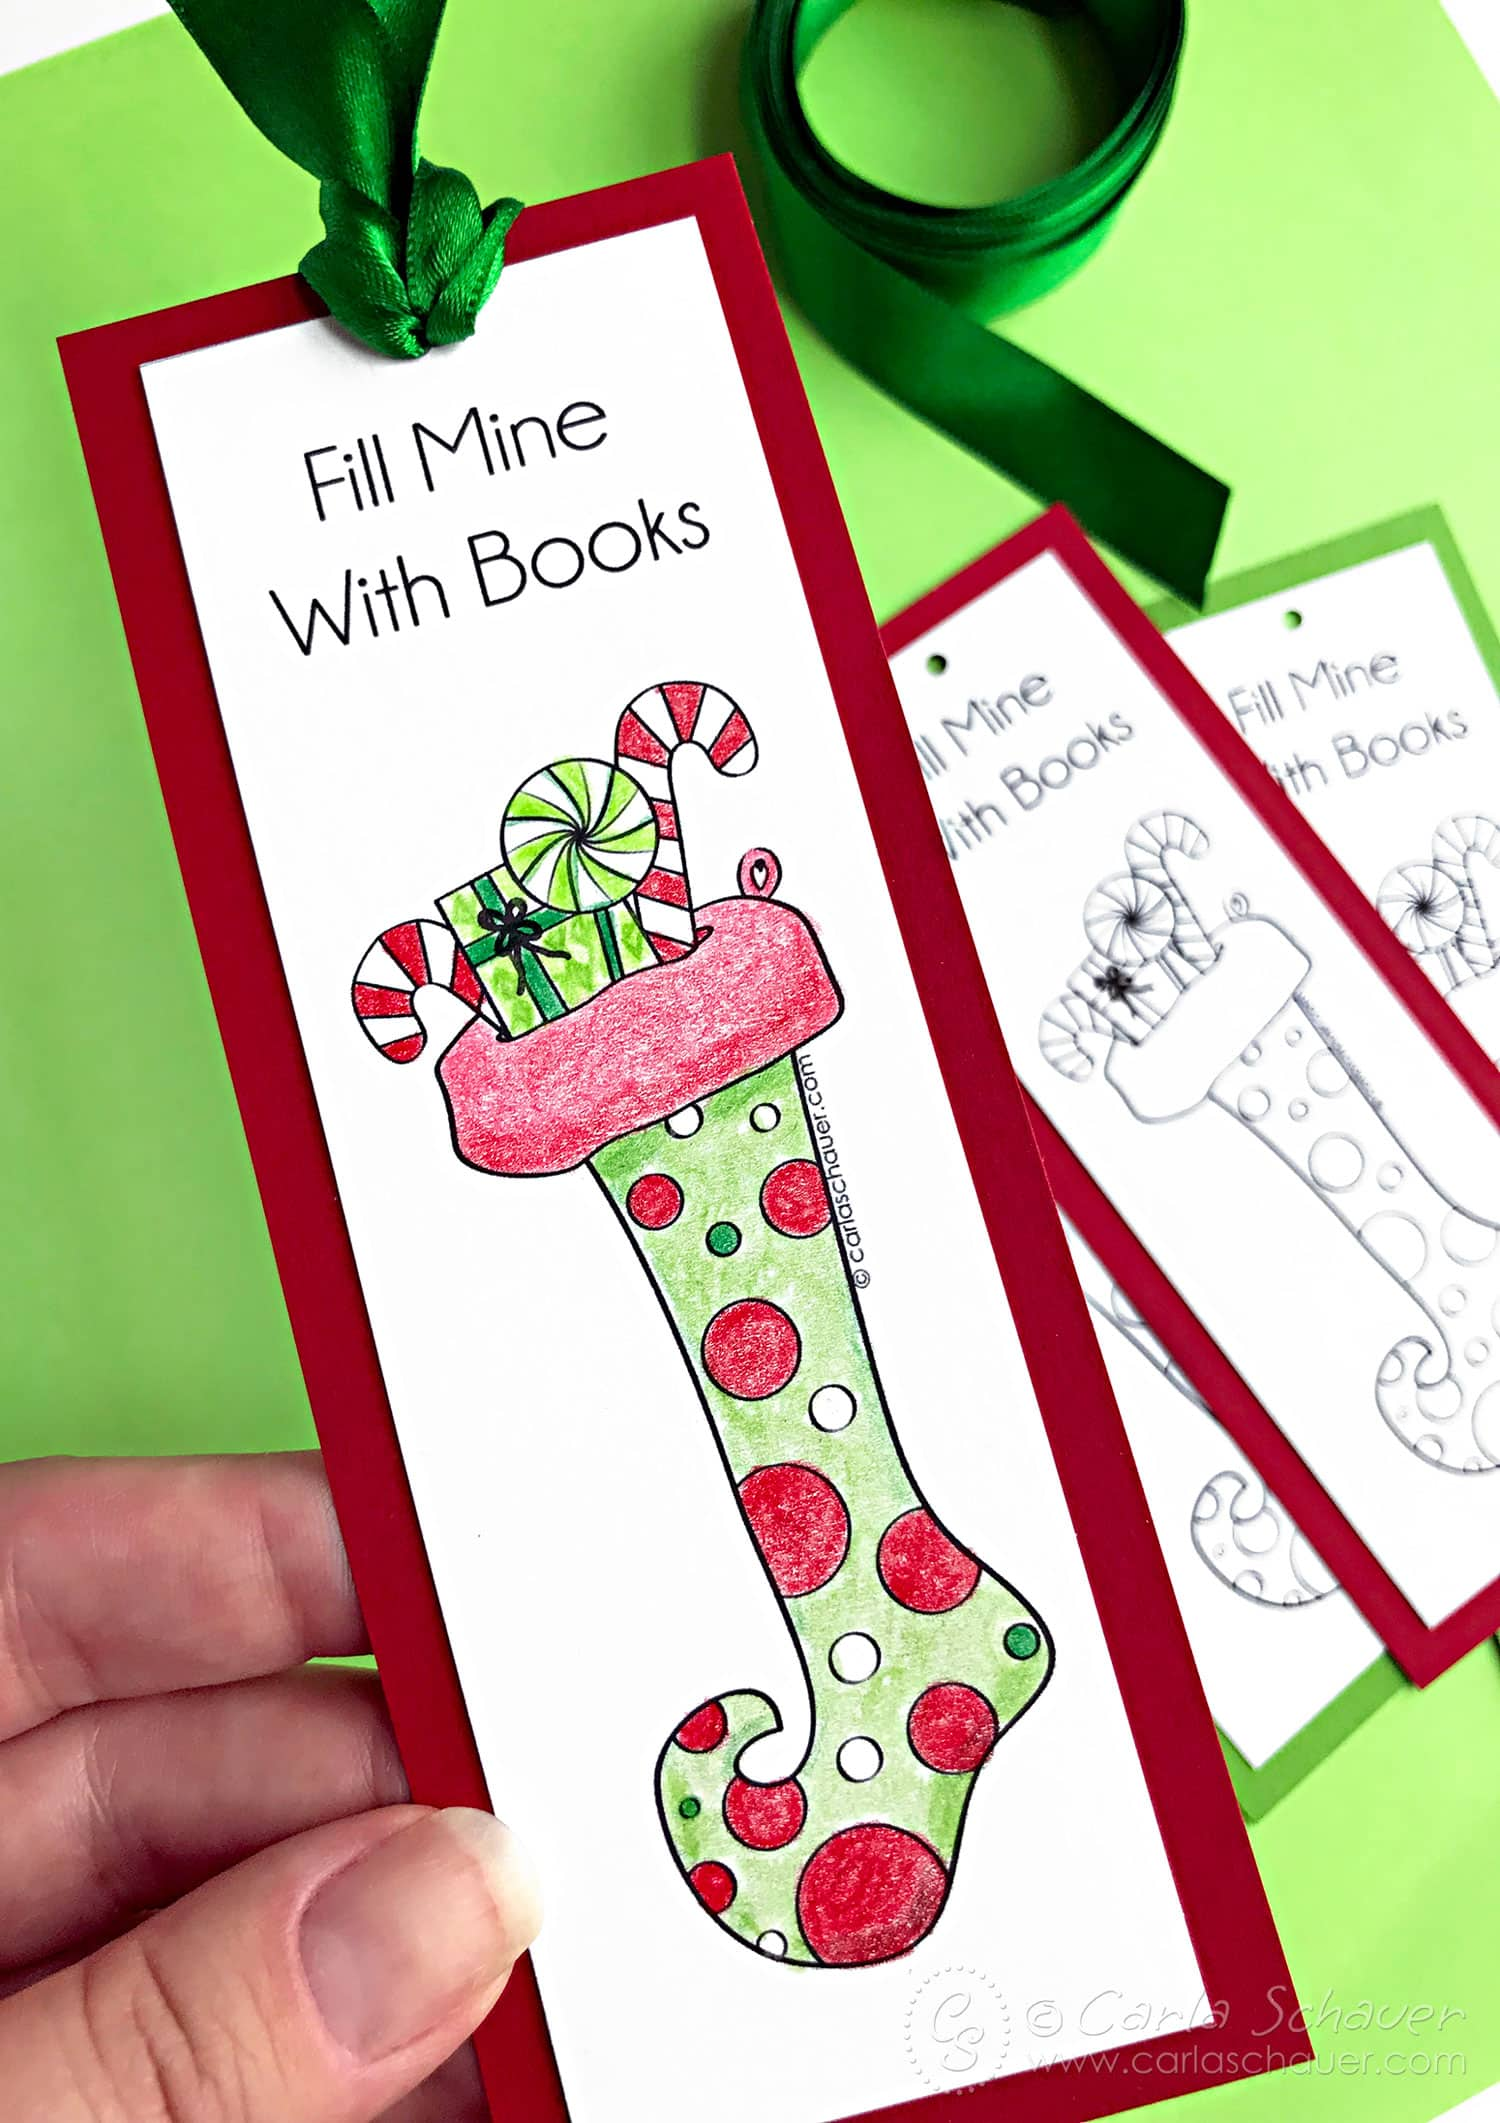 Colored stocking bookmark with red mat on green background.